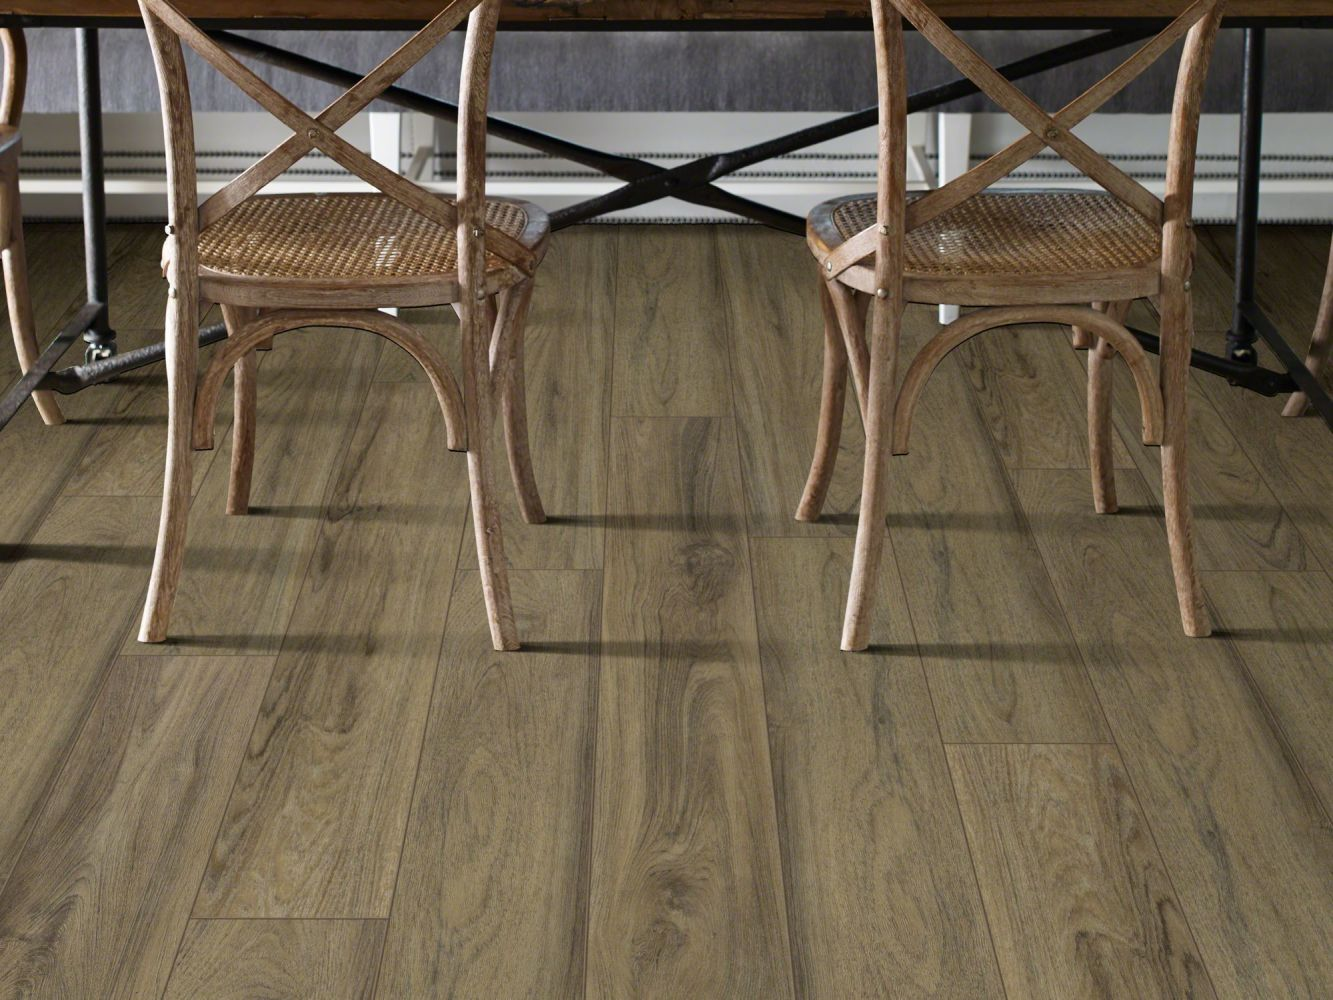 Shaw Floors Resilient Property Solutions Supino HD Plus Fiano 00587_VE231